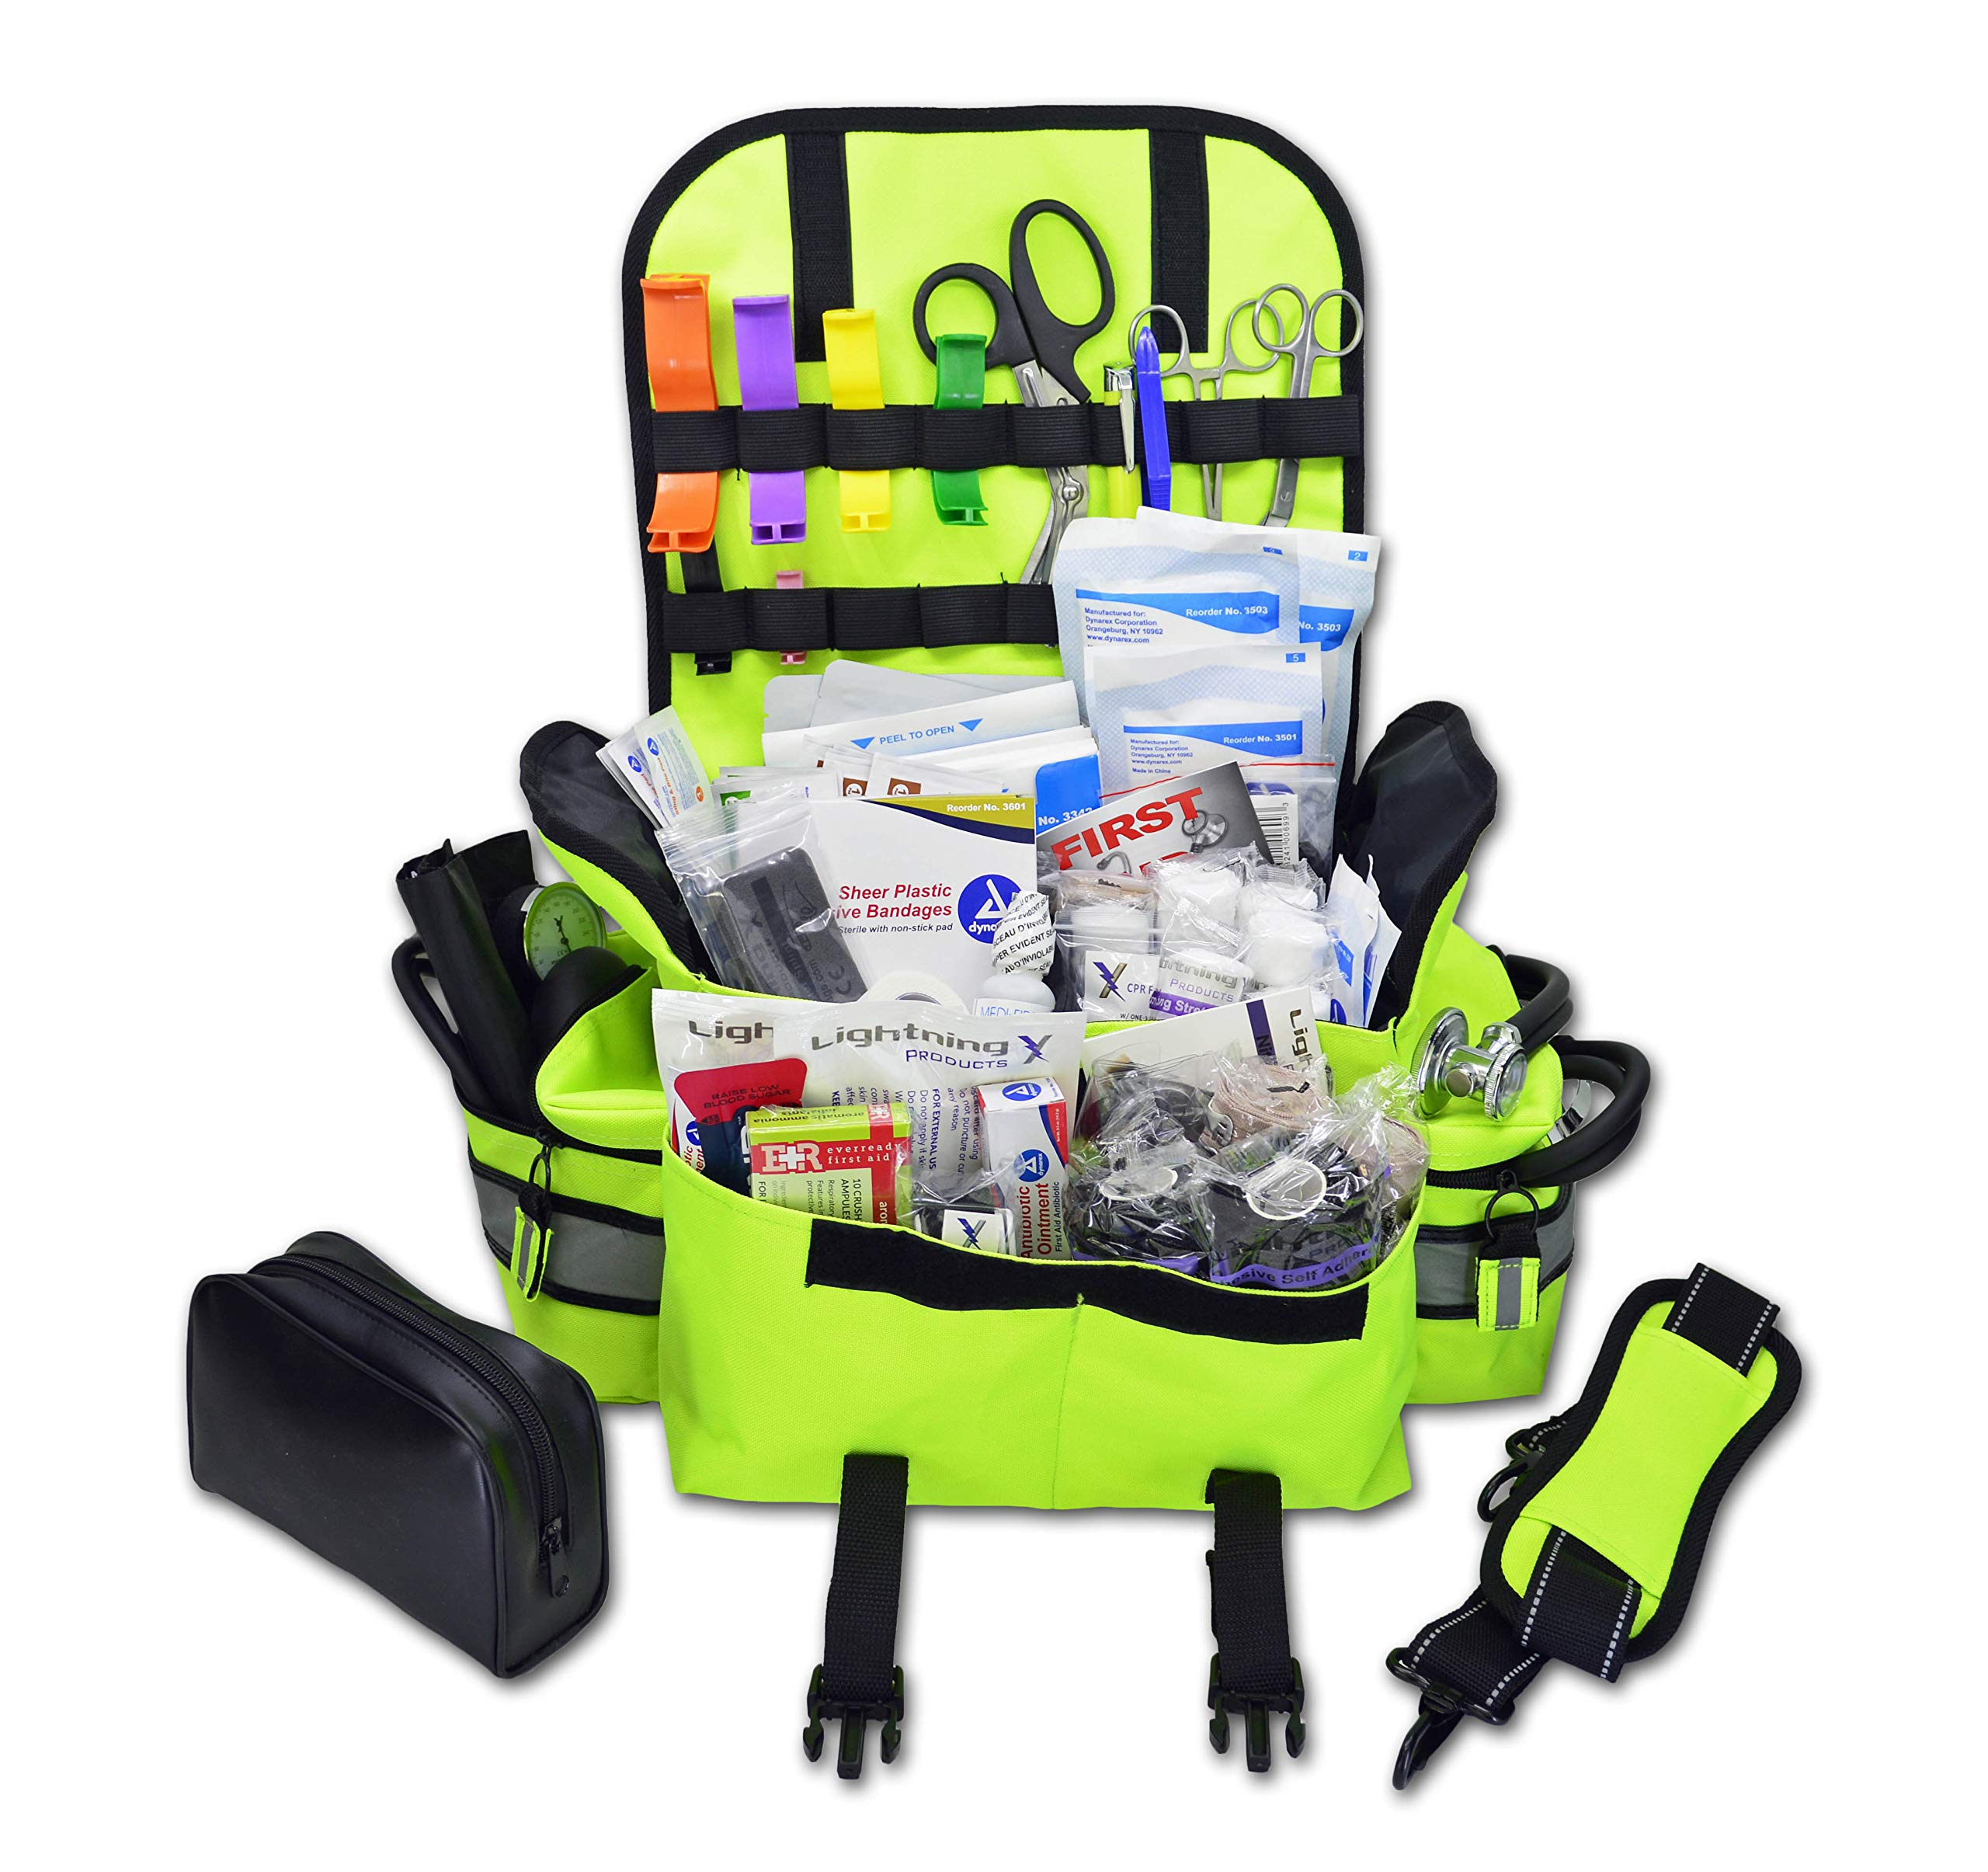 Lightning X Small First Responder EMT EMS Trauma Bag Stocked First Aid Fill Kit B (Fluorescent Yellow) by Lightning X Products